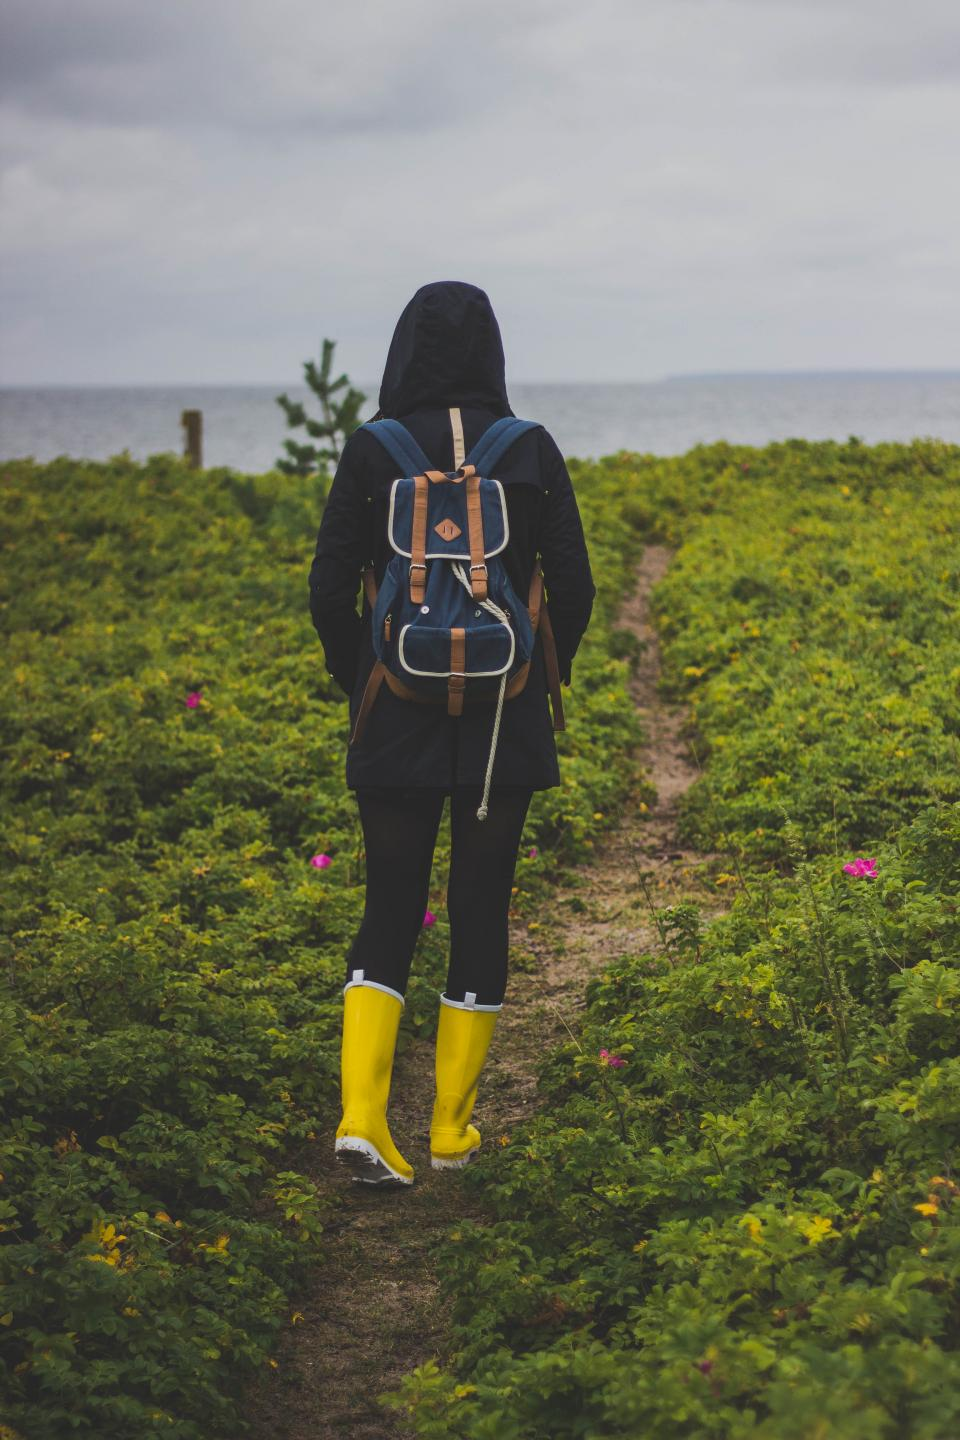 green grass path outdoor field people walking girl woman nature travel adventure back hoodie jacket yellow boots bag sea ocean water sky cloud horizon